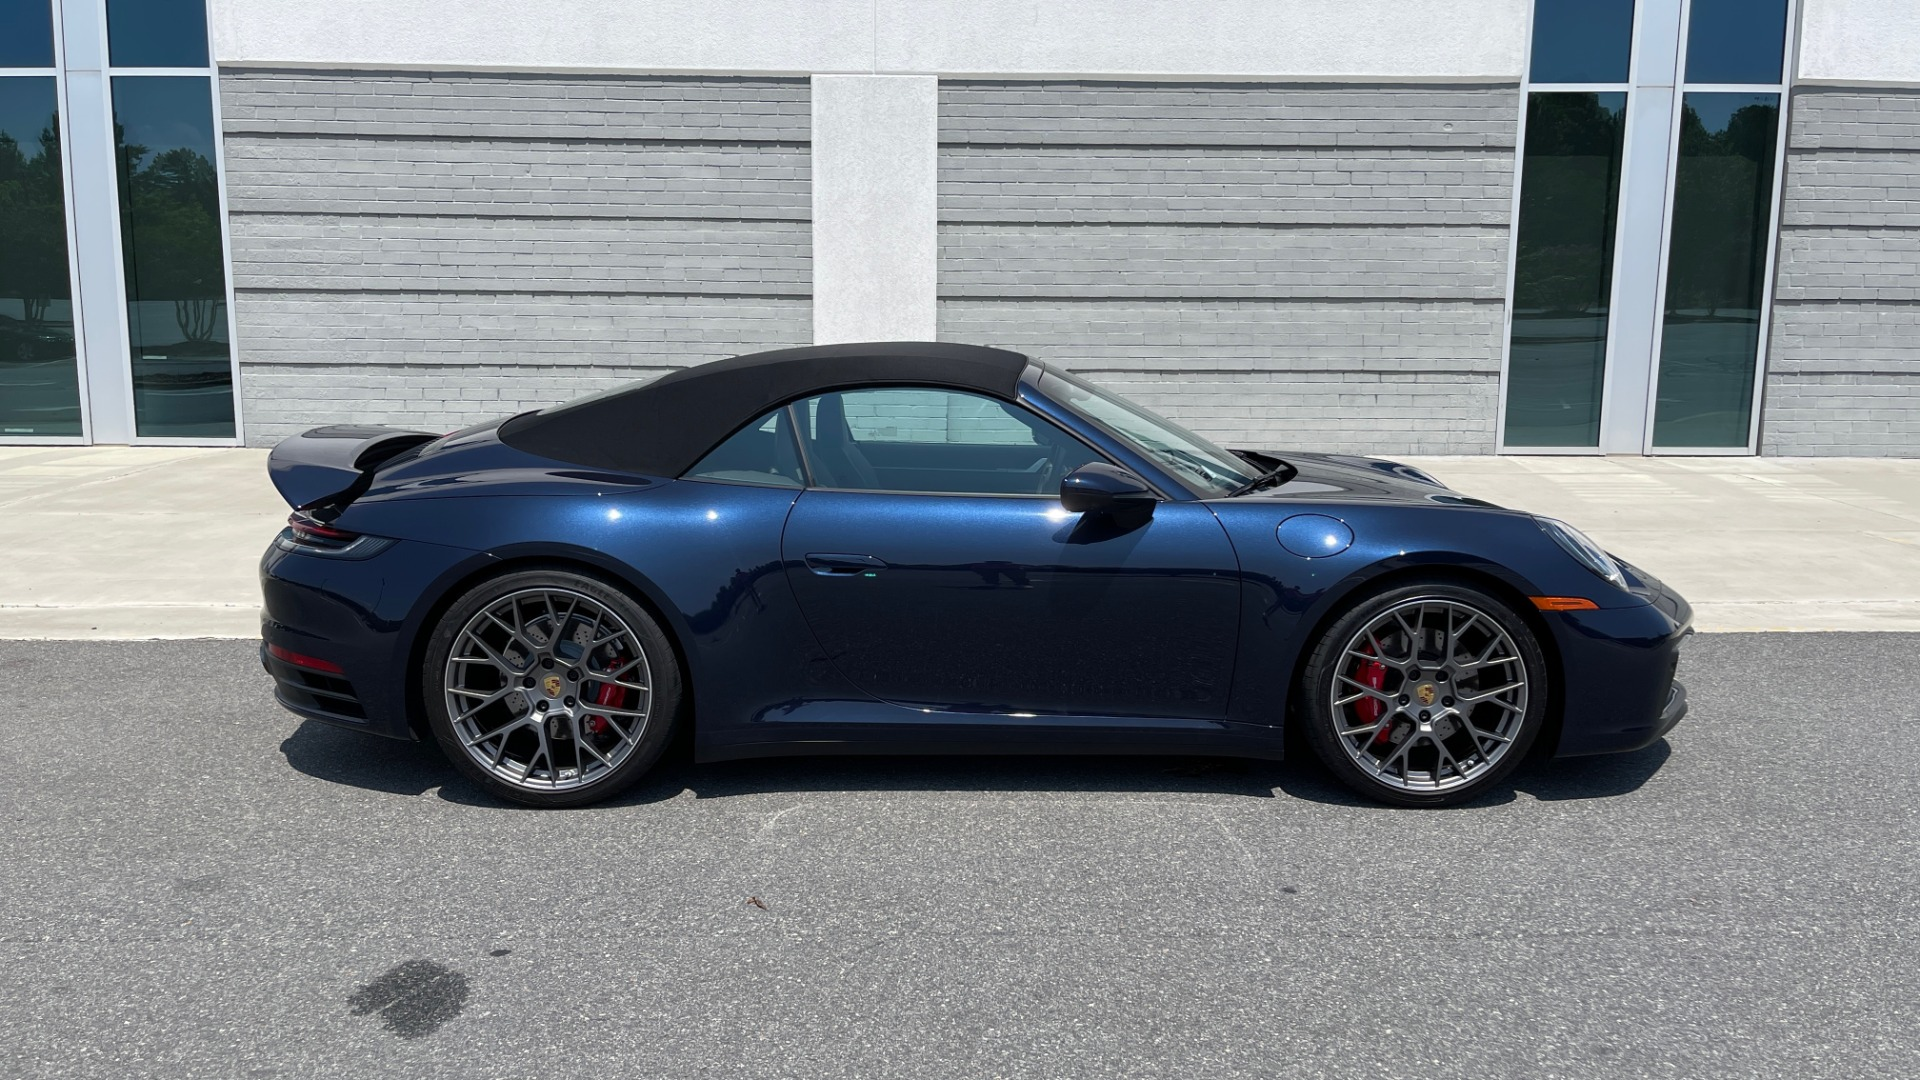 Used 2020 Porsche 911 CARRERA S CABRIOLET PREMIUM SPORT / LCA / ACC / BOSE / REARVIEW for sale $159,995 at Formula Imports in Charlotte NC 28227 7